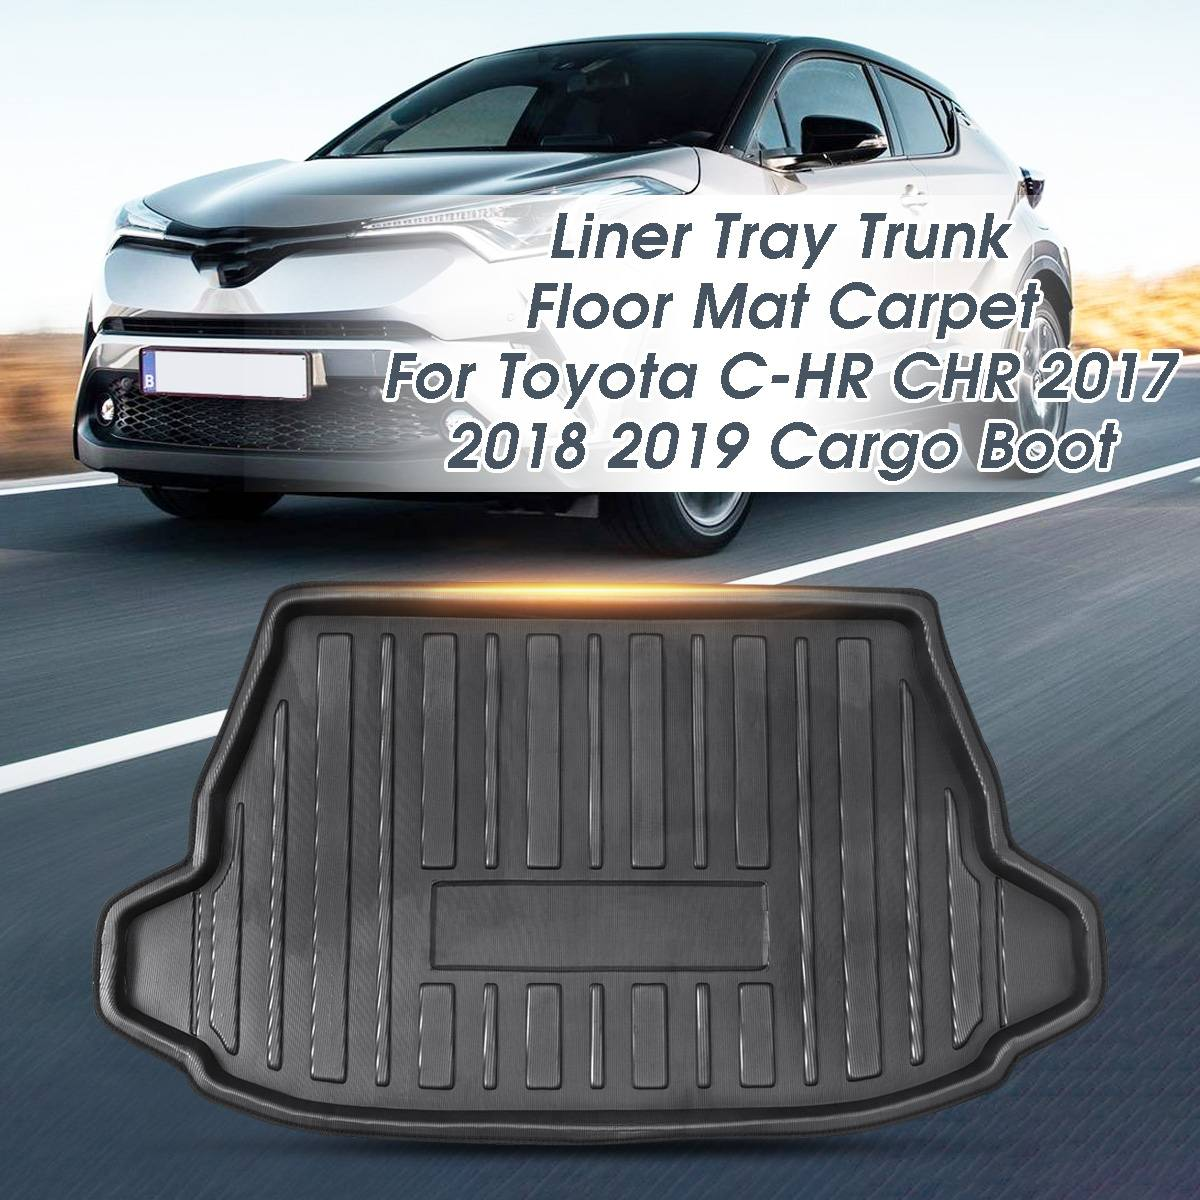 Cargo Liner Tray Rear Waterproof Trunk Mat Floor Carpet Tailored Boot For Toyota C-HR CHR 2017+ 2018 2019 2020+ Car Accessories